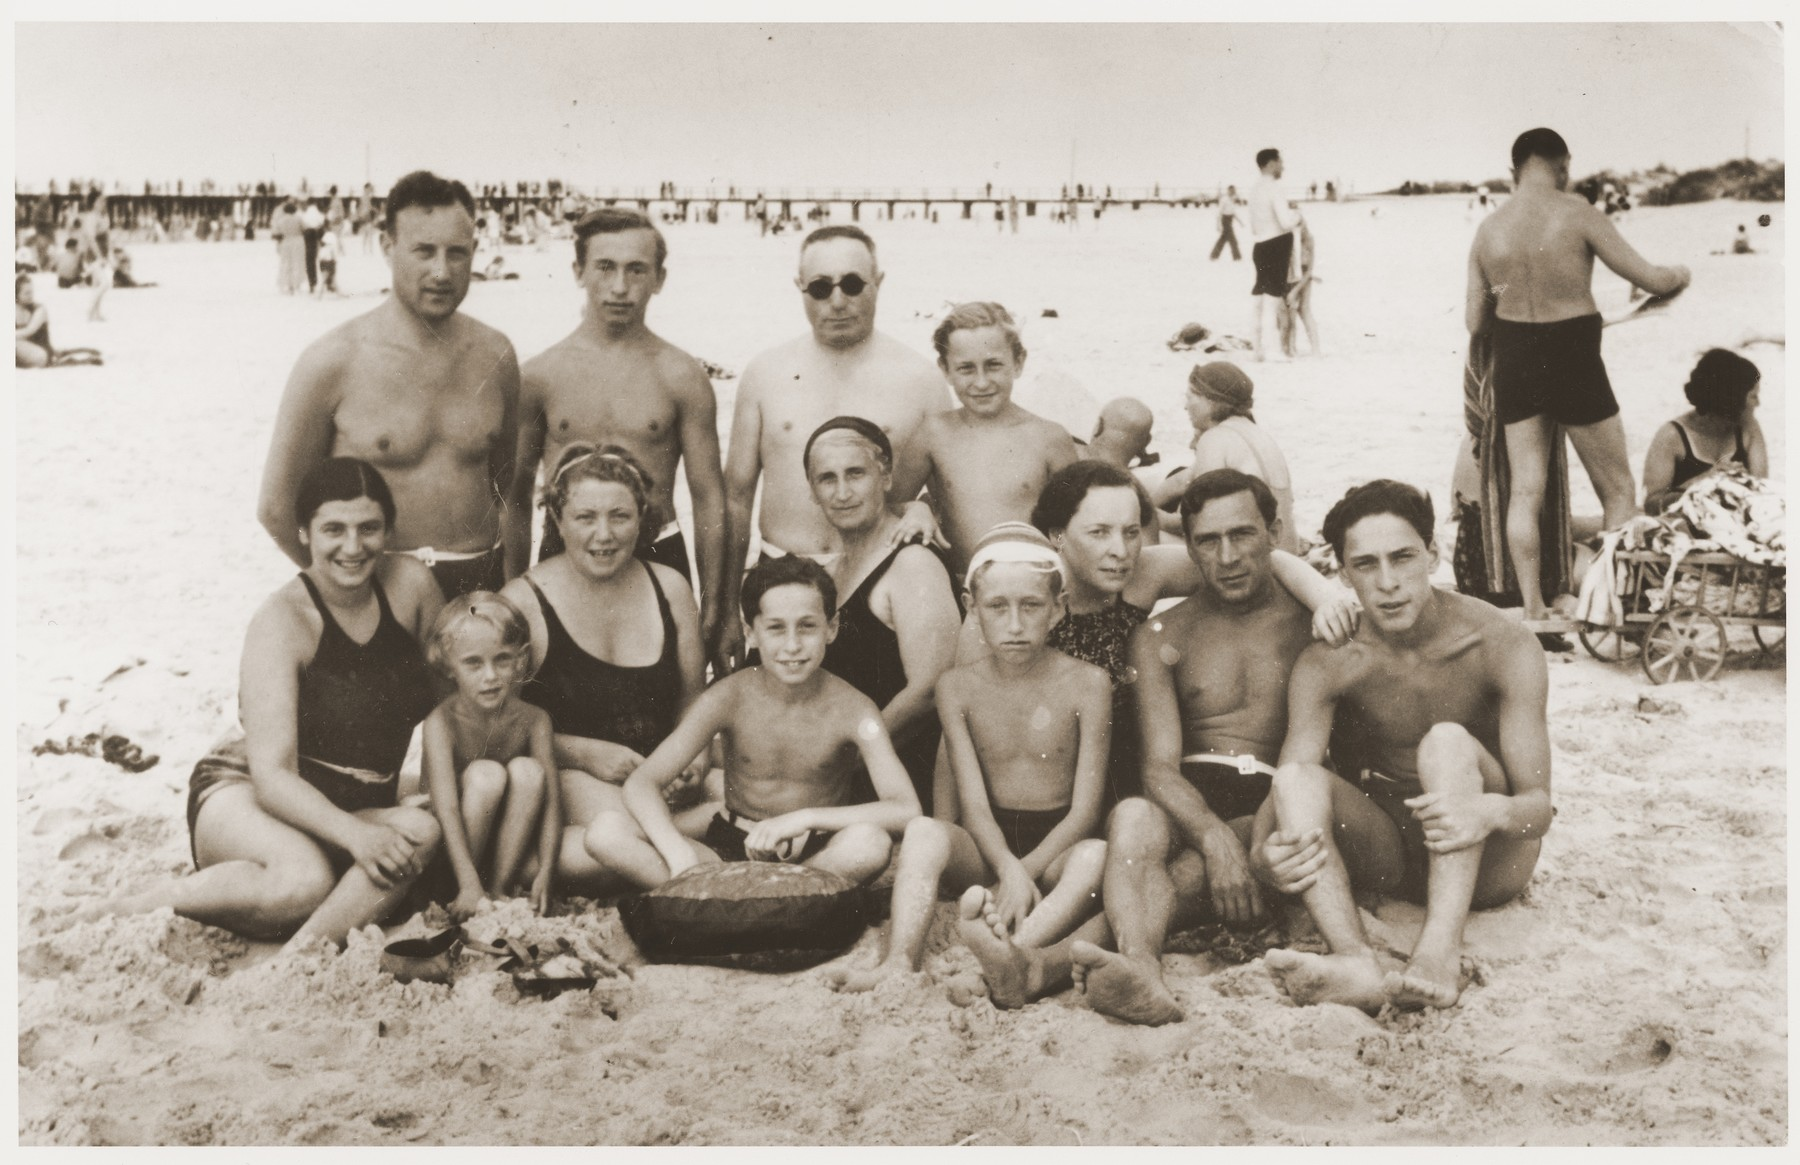 A Lithuanian-Jewish family poses for a vacation at the beach in Palaugin.    Pictured first row (left to right) Bella Adler (survived) and Fruma Vitkin (taken out of ghetto and hidden).  Back row: Fruma Vitkin's parents (perished), Pinchos Birger and his son (Zev).